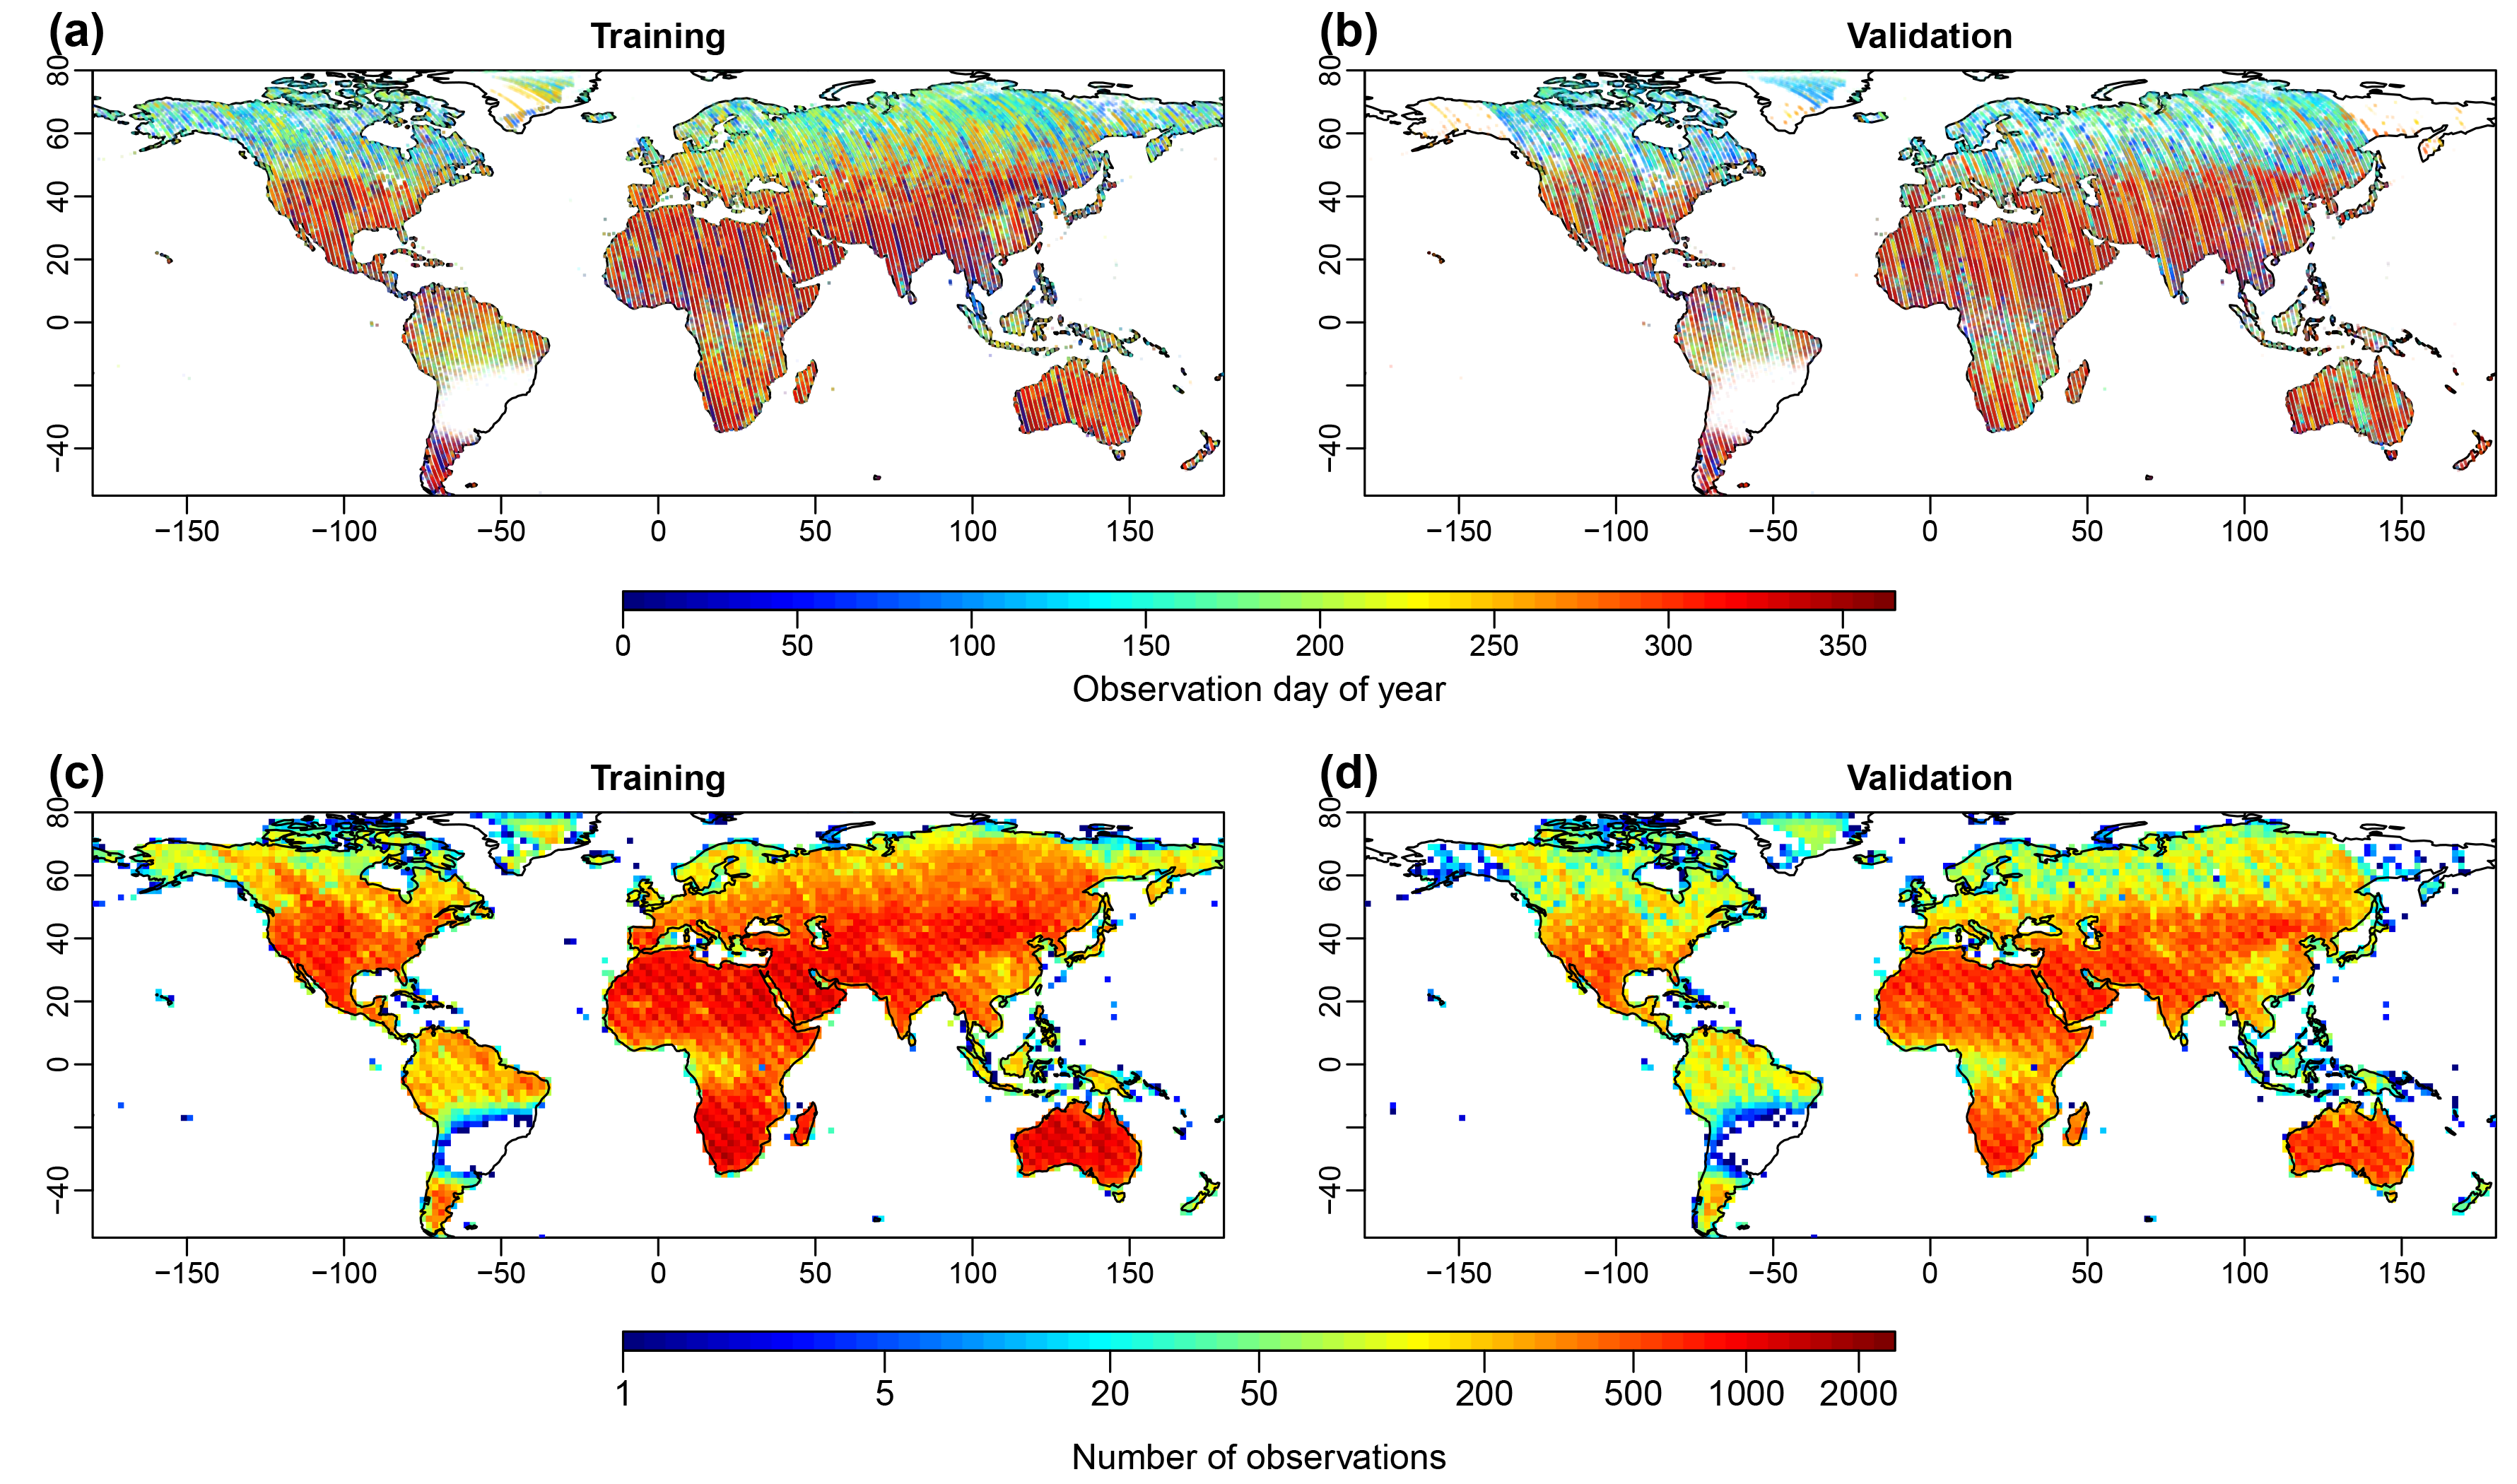 BG - A global spatially contiguous solar-induced fluorescence (CSIF